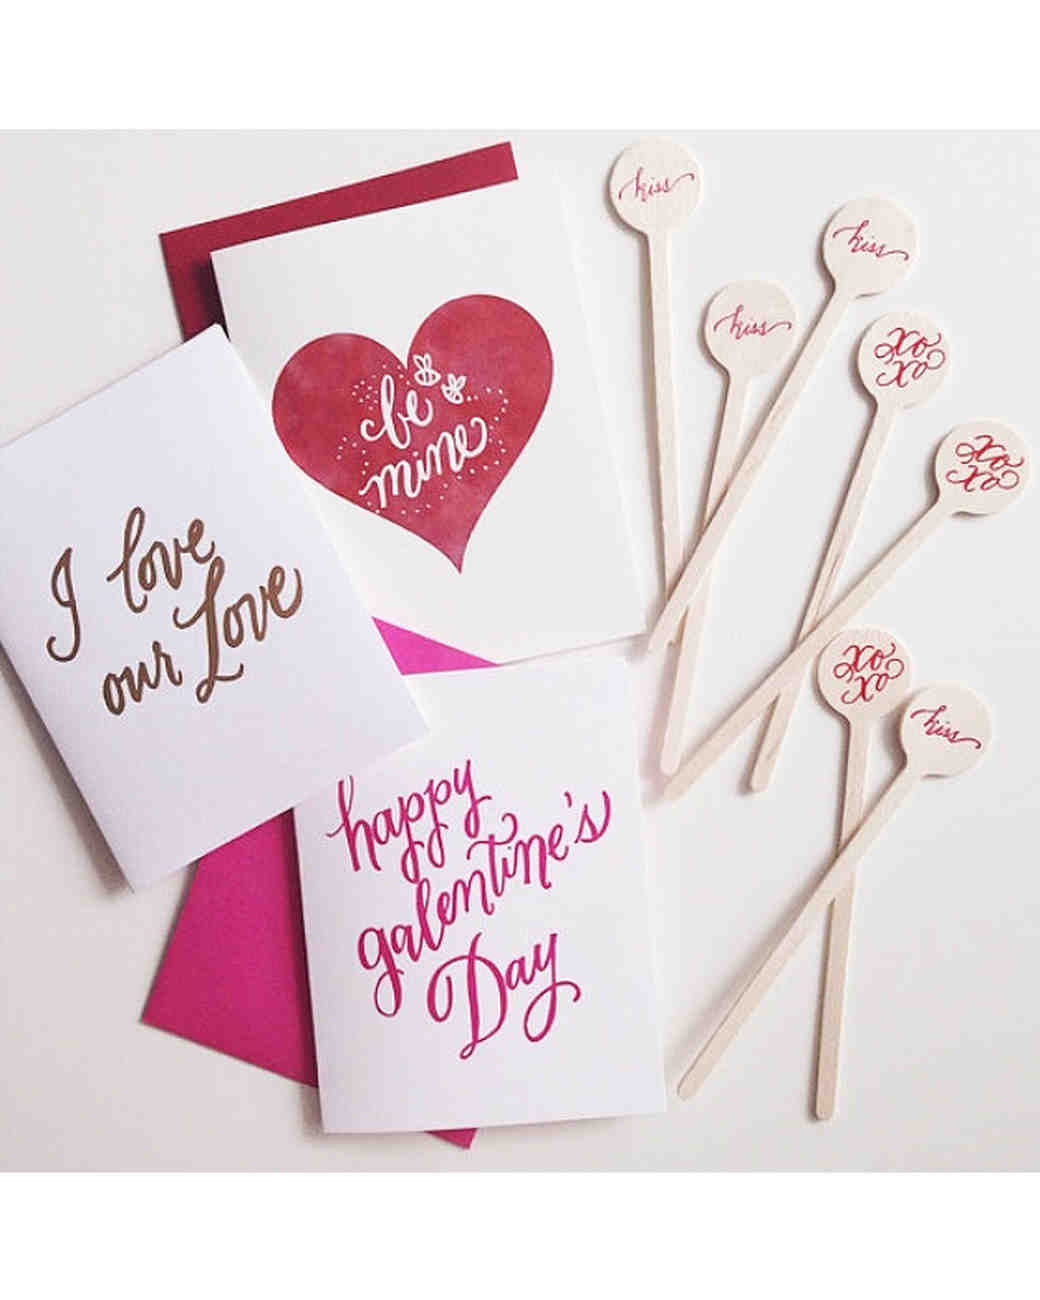 valentines-day-wedding-ideas-cards-0216.jpg